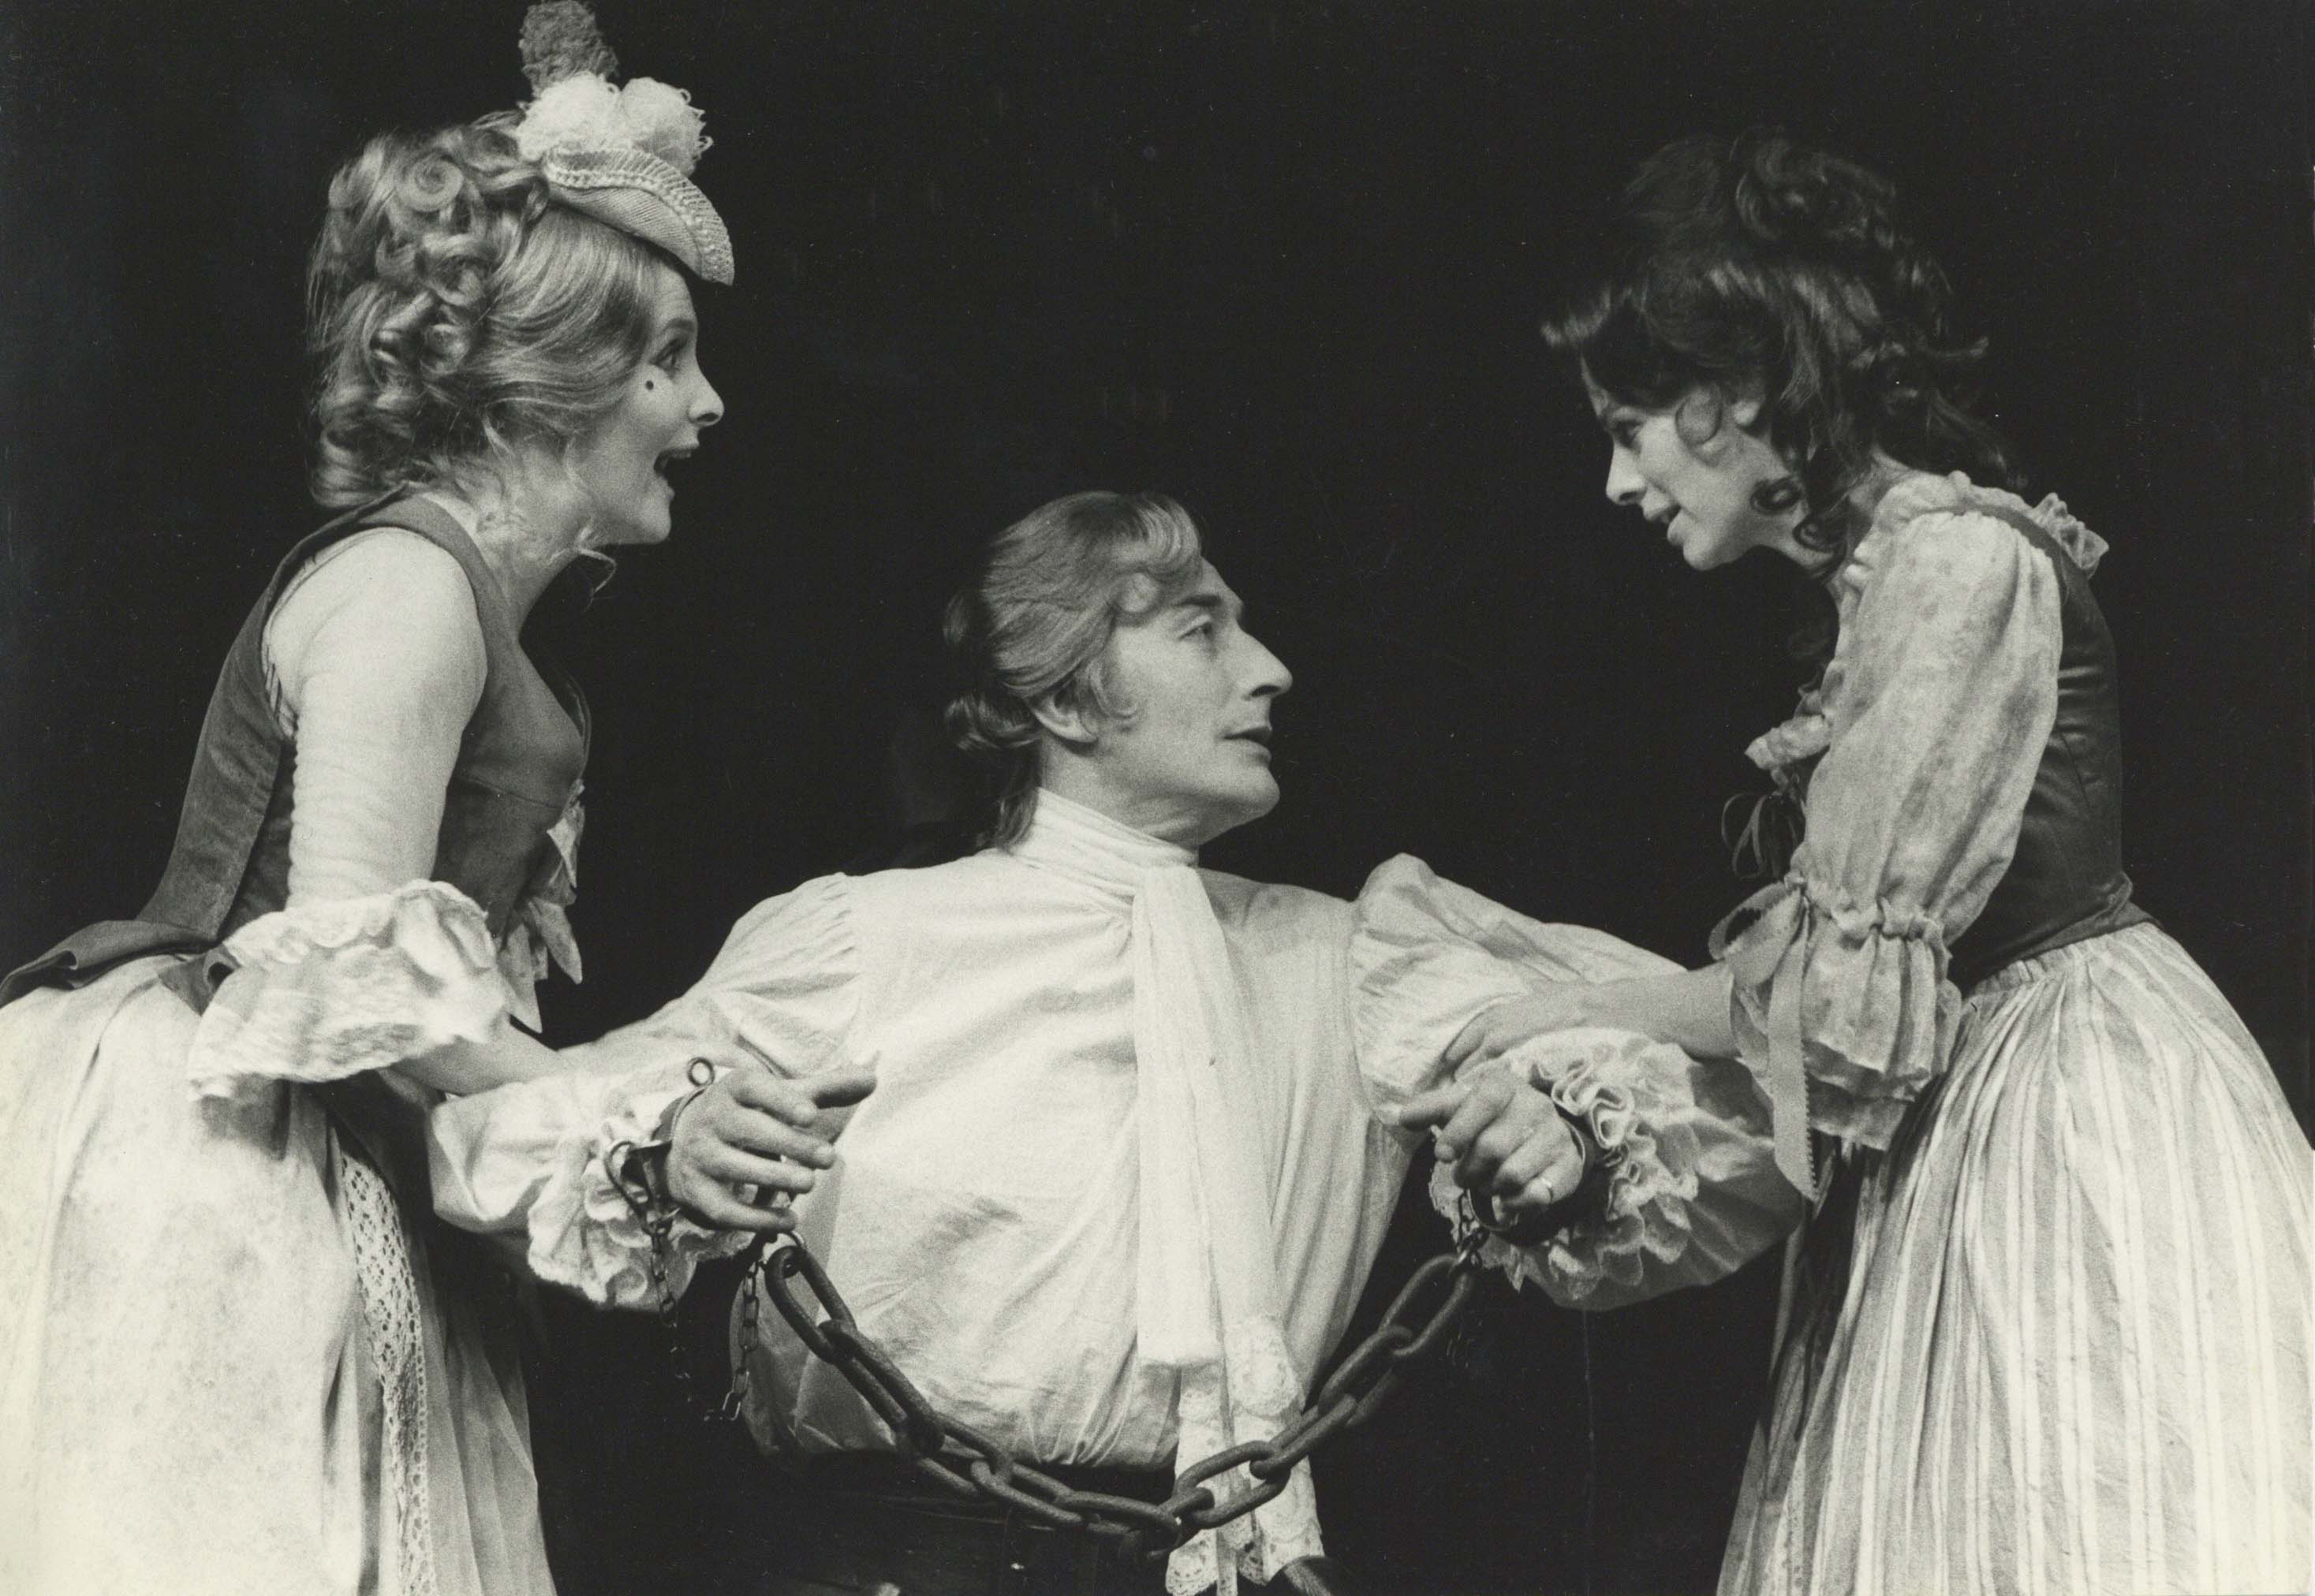 Production photograph - The Beggar's Opera - Millicent Martin, John Neville, Angela Richards - Photographer John Timbers - 1971